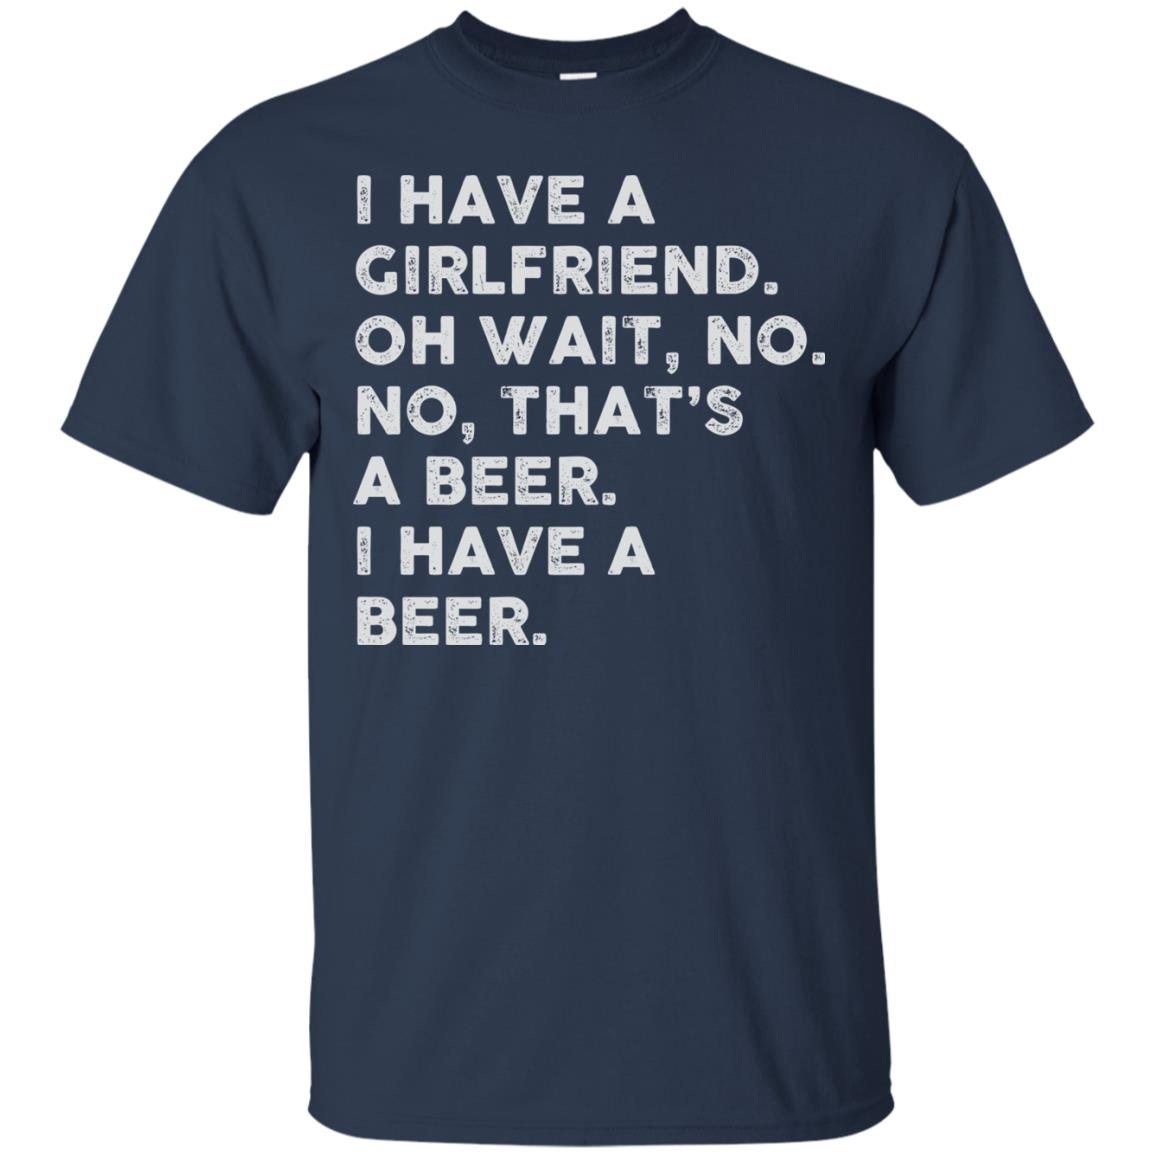 image 2179 - I have a girlfriend oh wait No No that's a beer shirt, hoodie